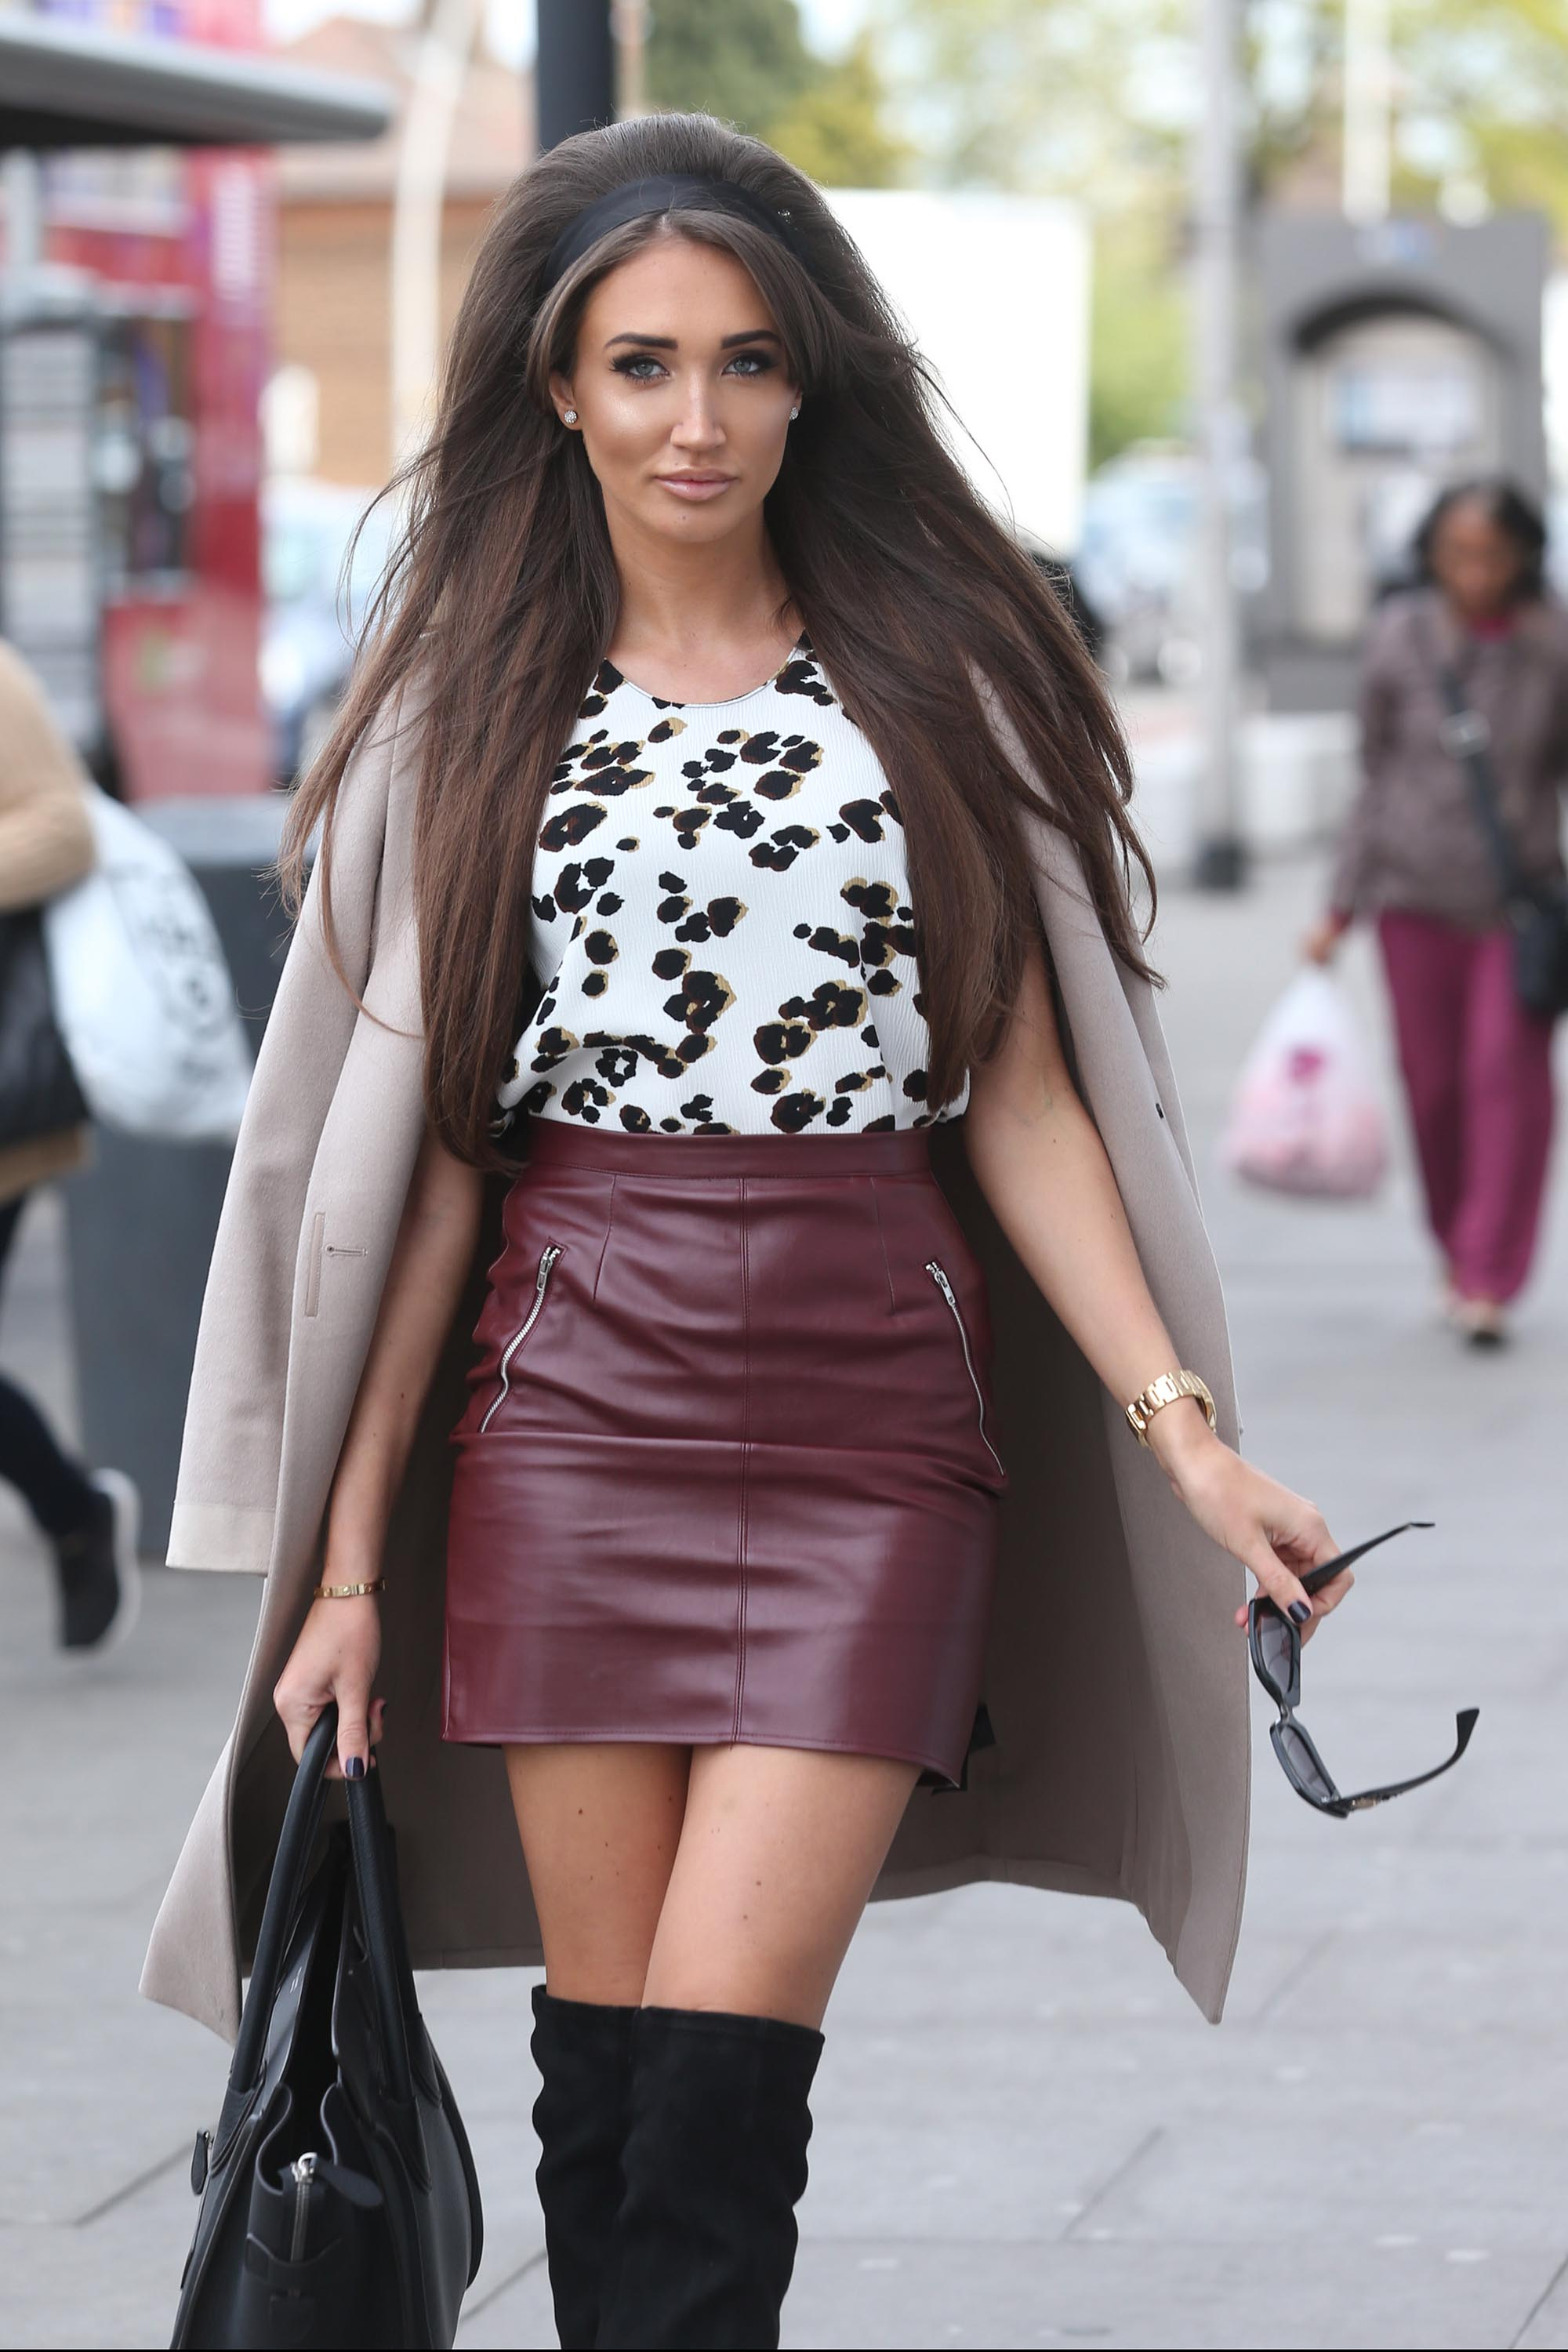 Megan McKenna filming scenes for TOWIE